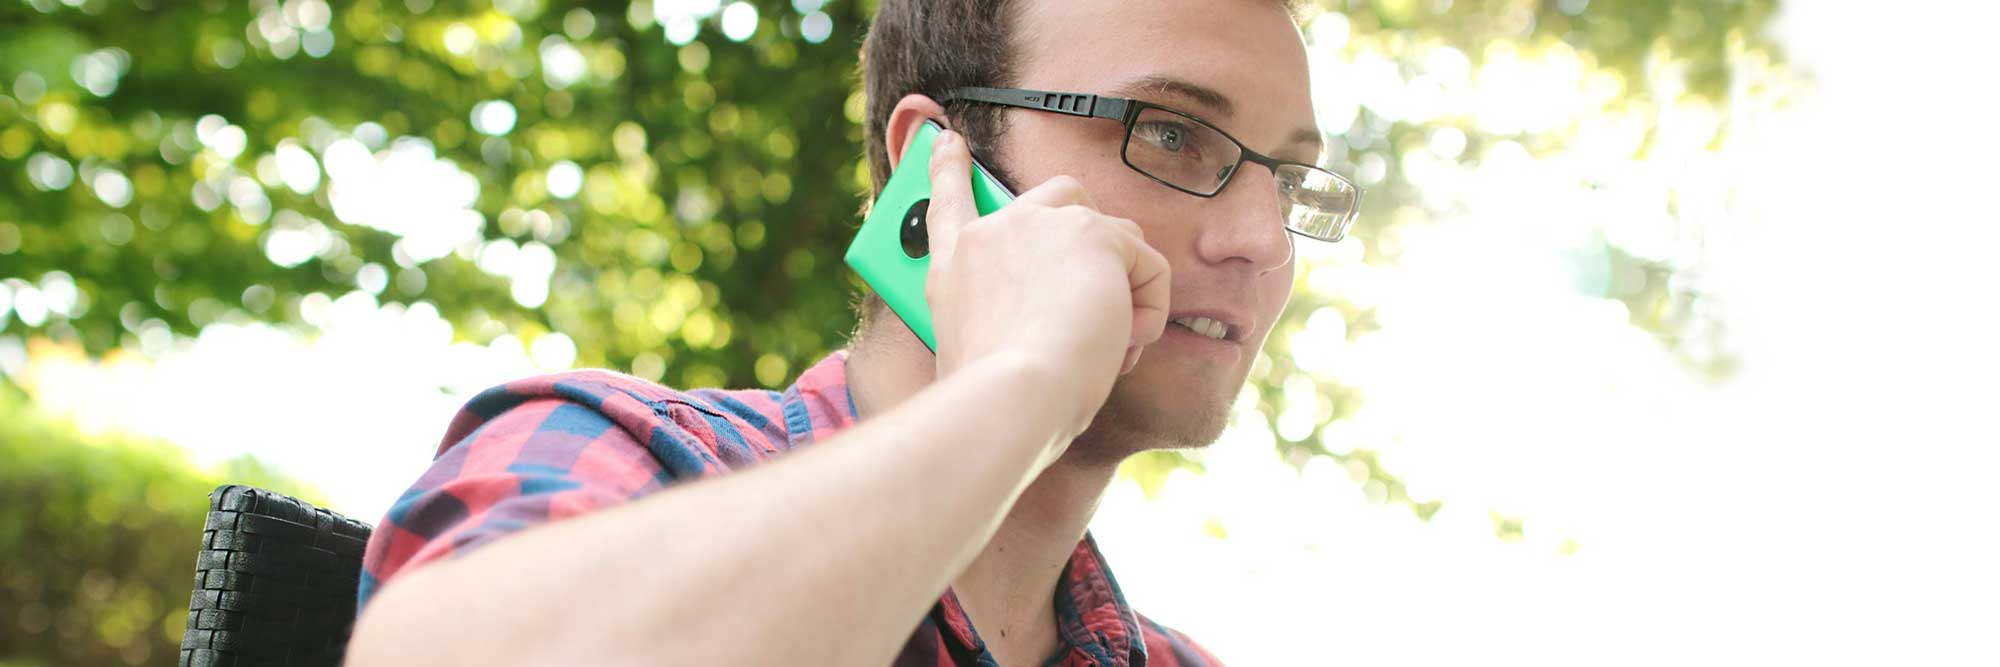 Man holding mobile phone to his ear